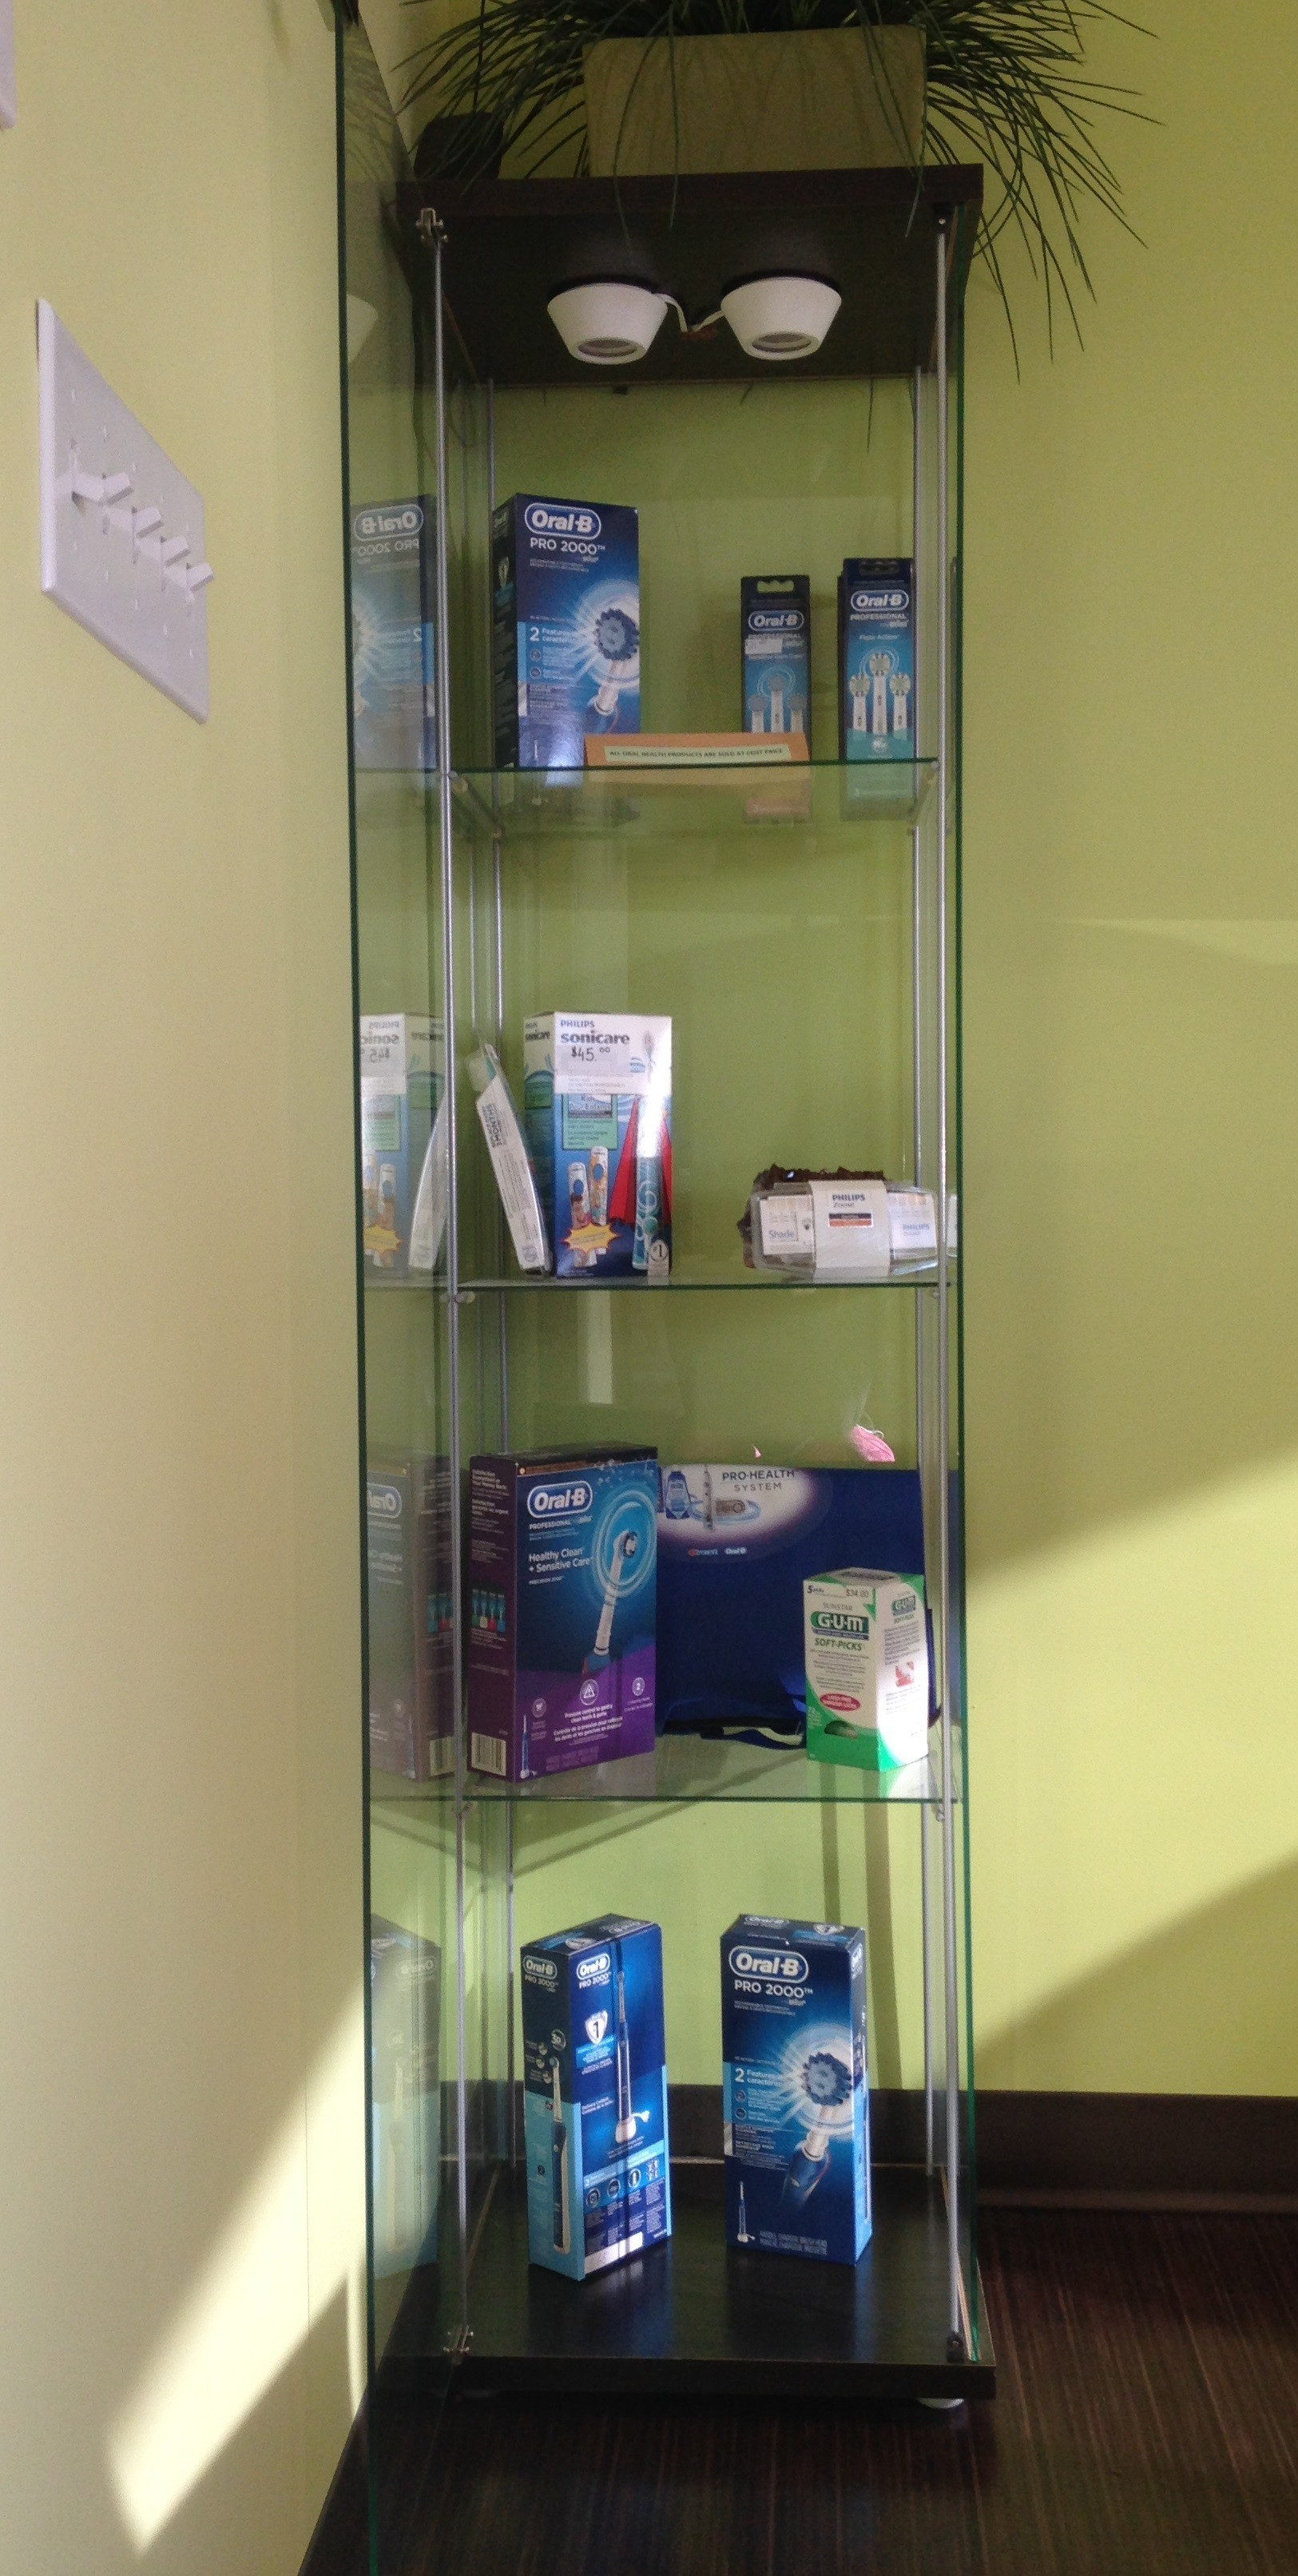 Oral Health products sold at cost